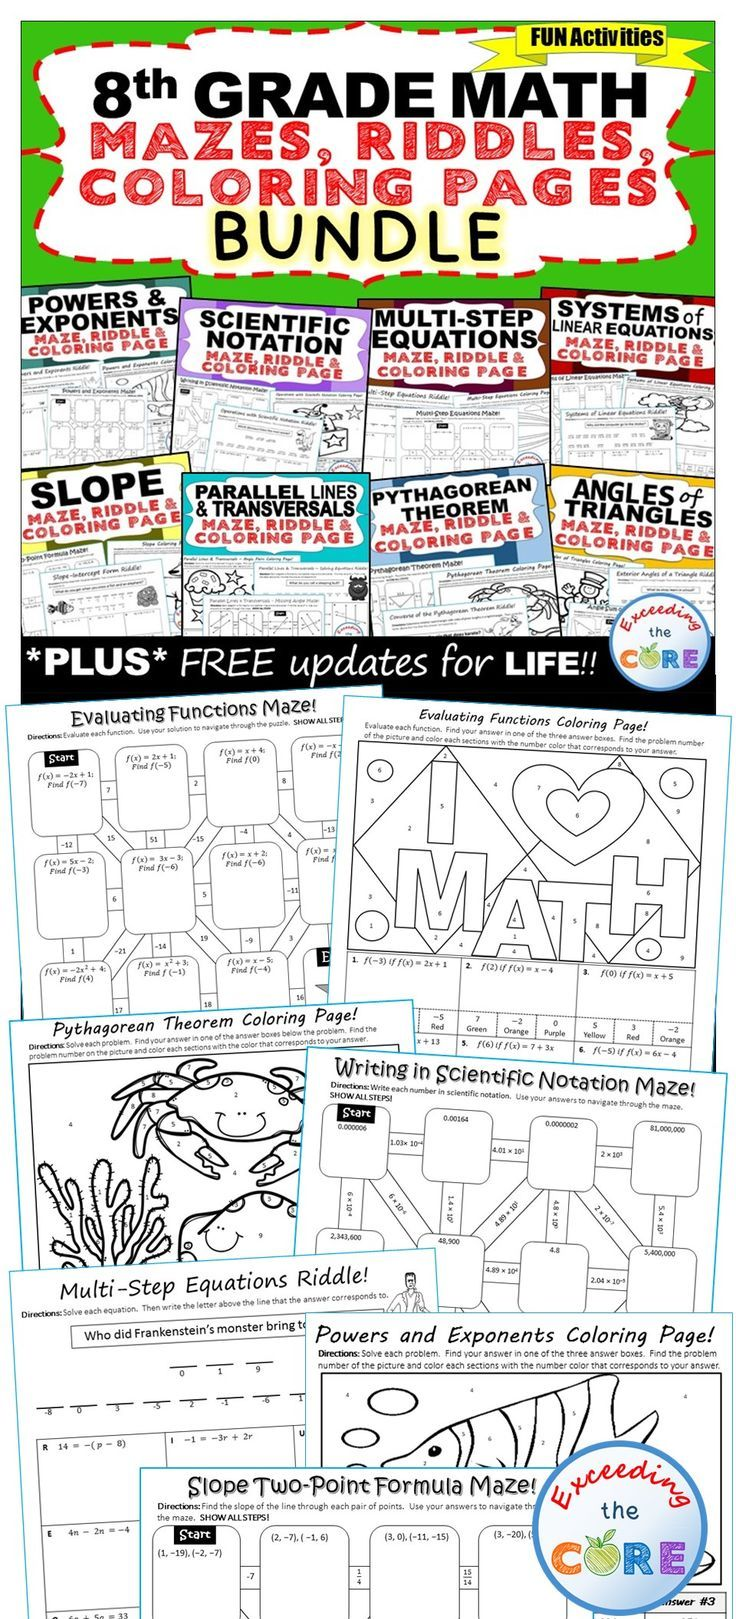 8th grade math mazes riddles coloring pages fun math activities whats included